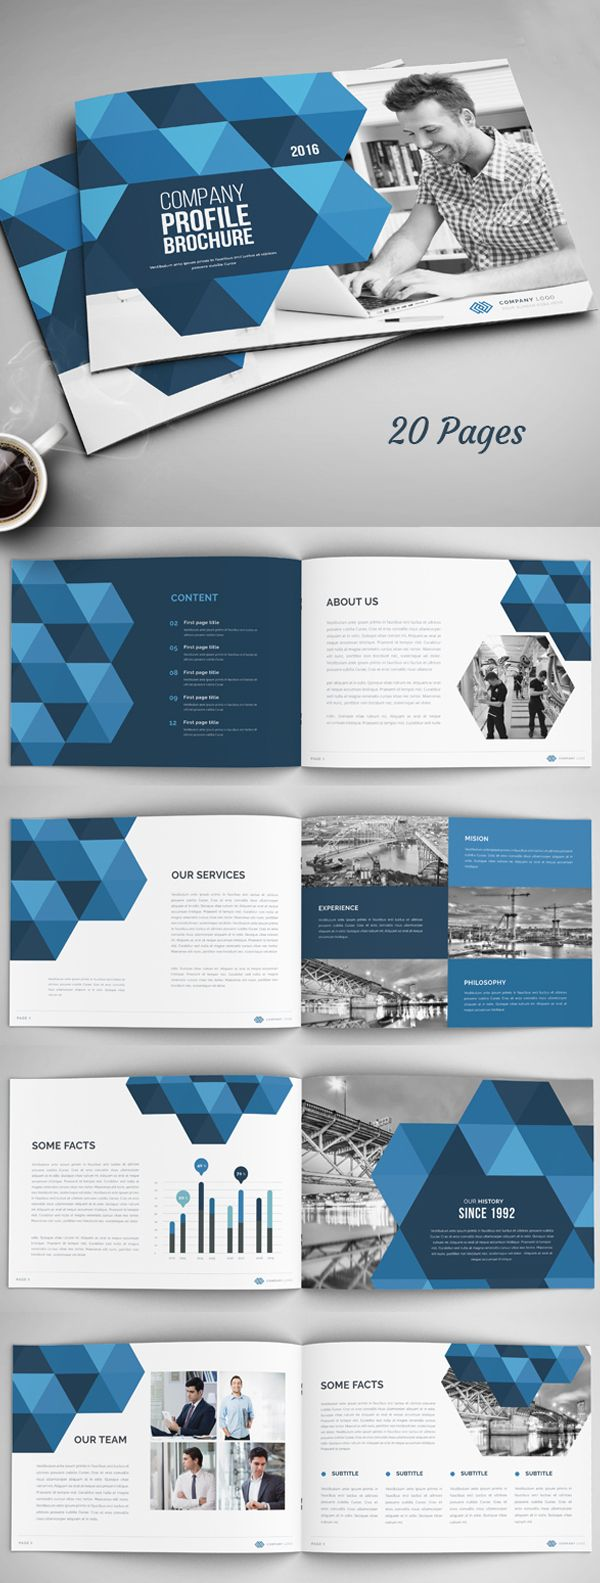 20 Pages Annual Report / Company Profile Brochure Template More  Free Samples Of Company Profiles